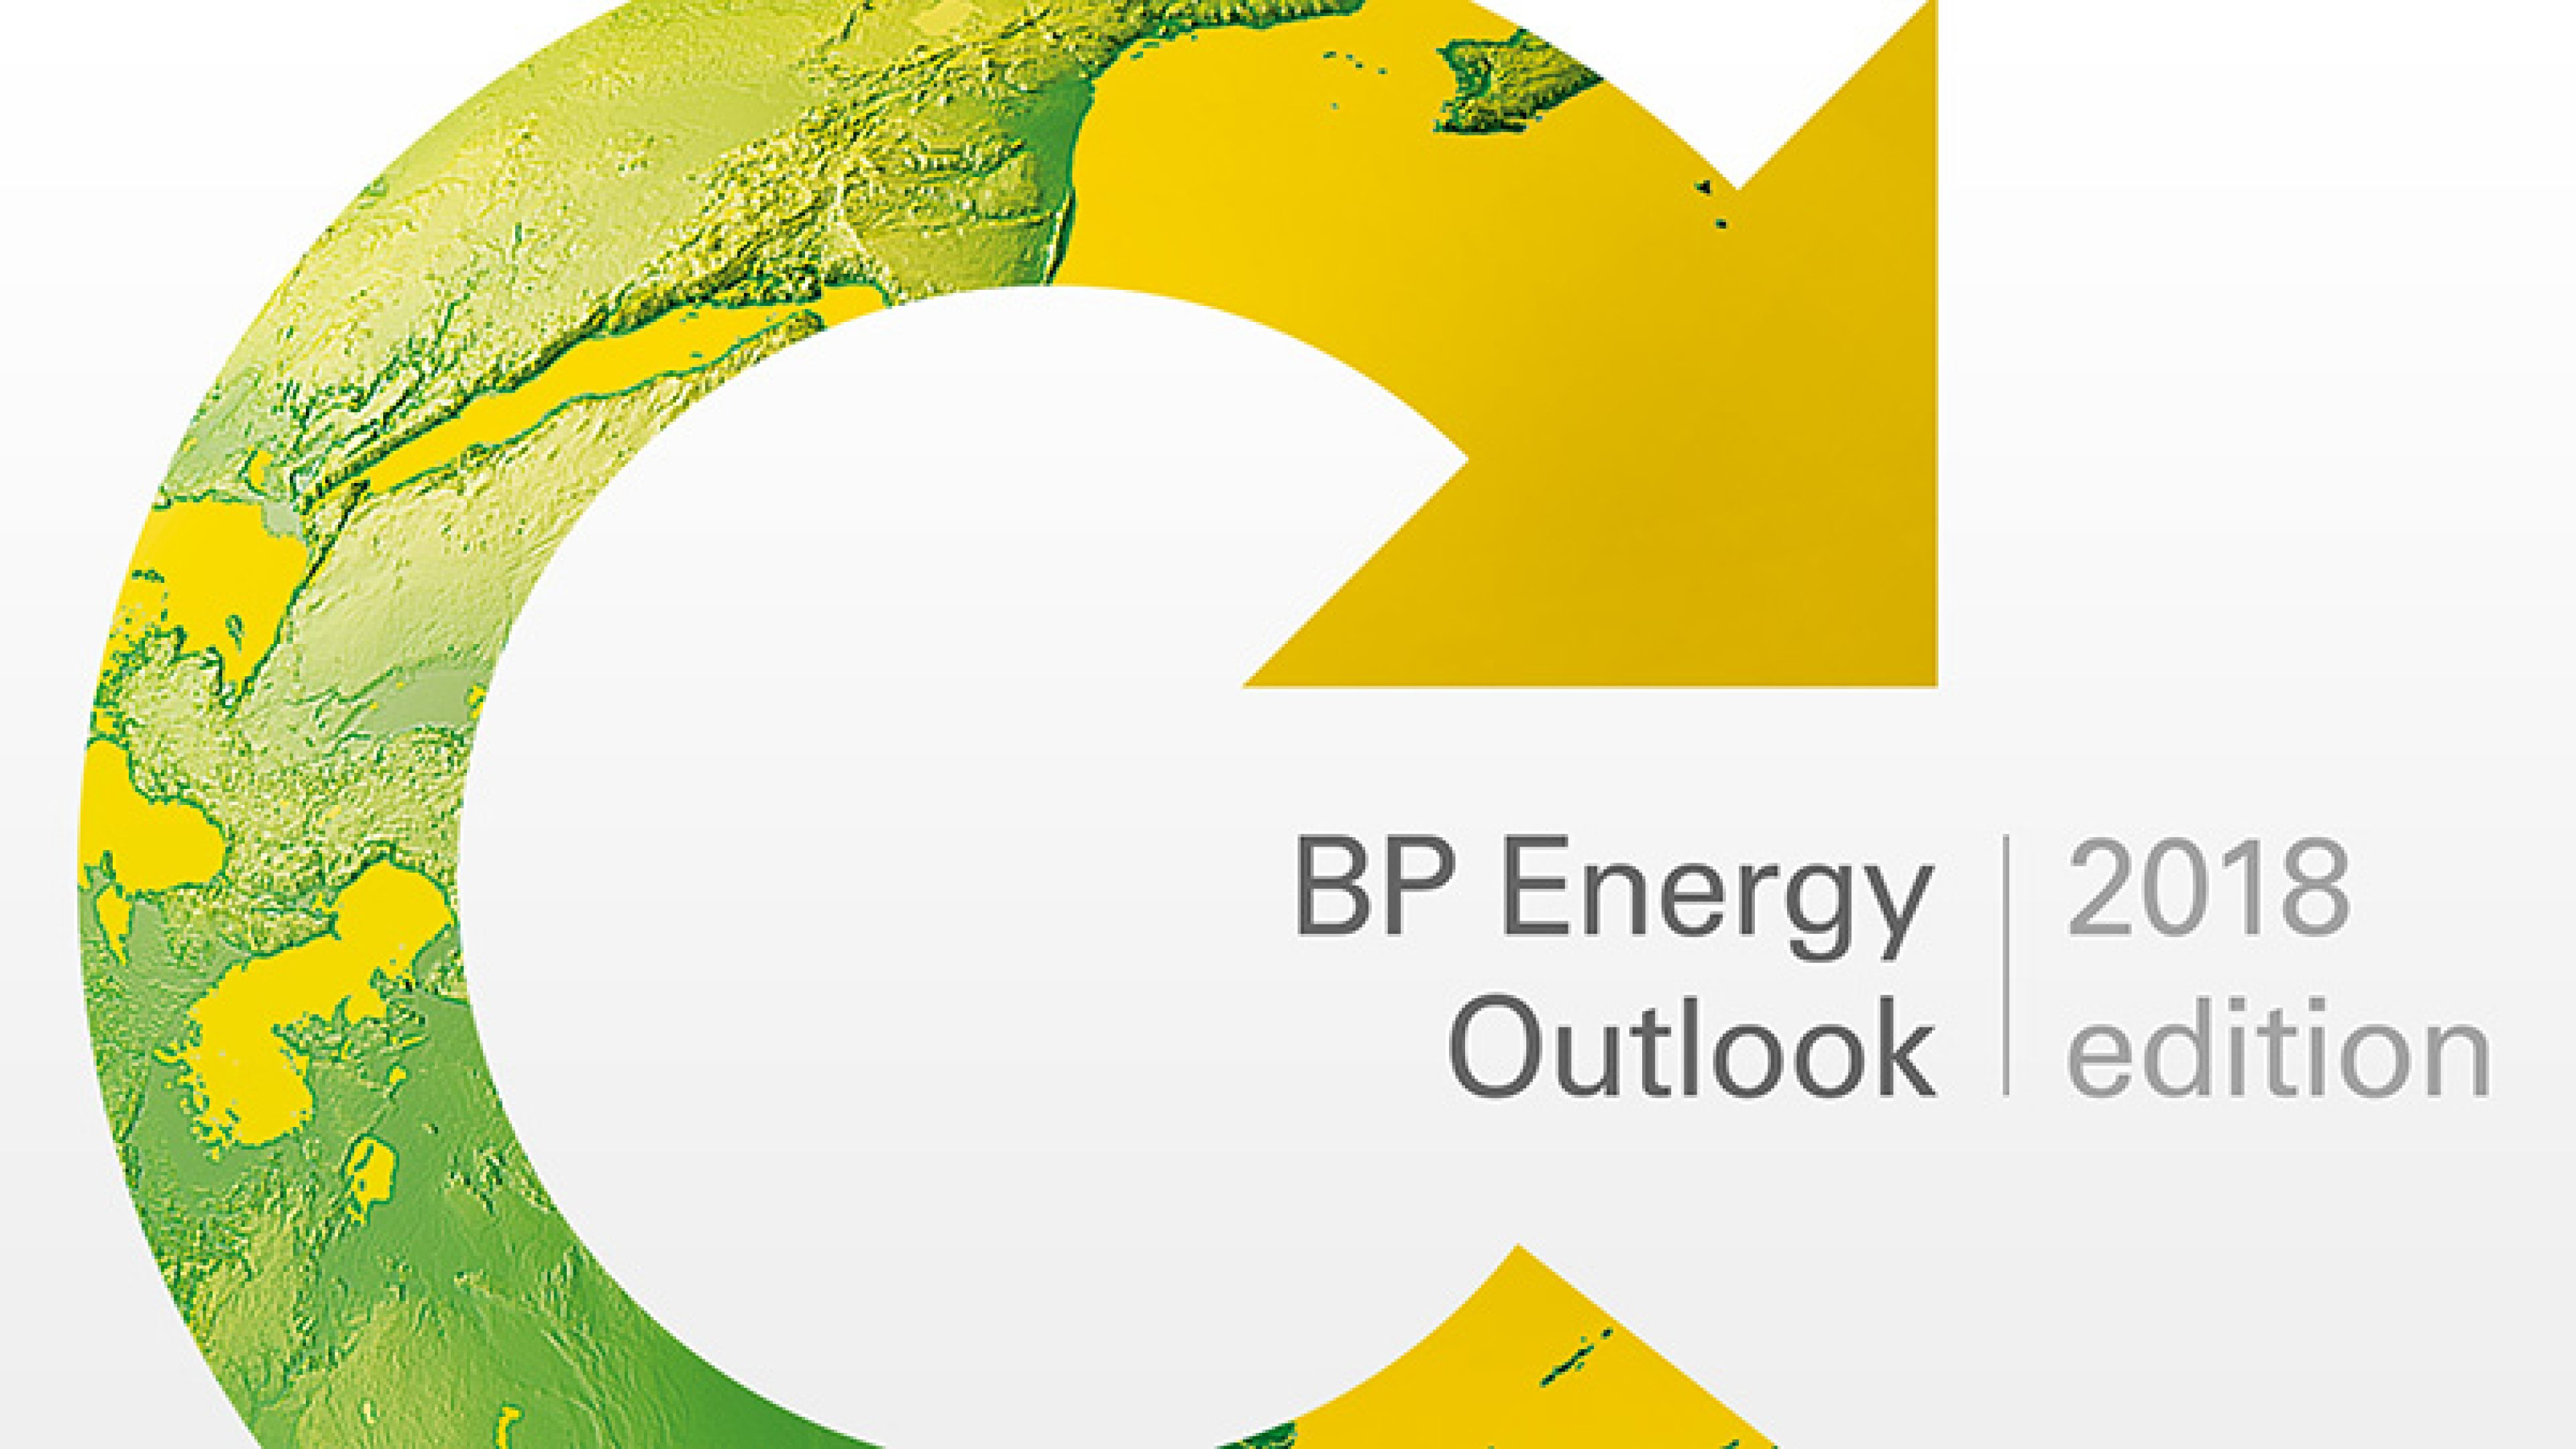 BP Energy Outlook 2018